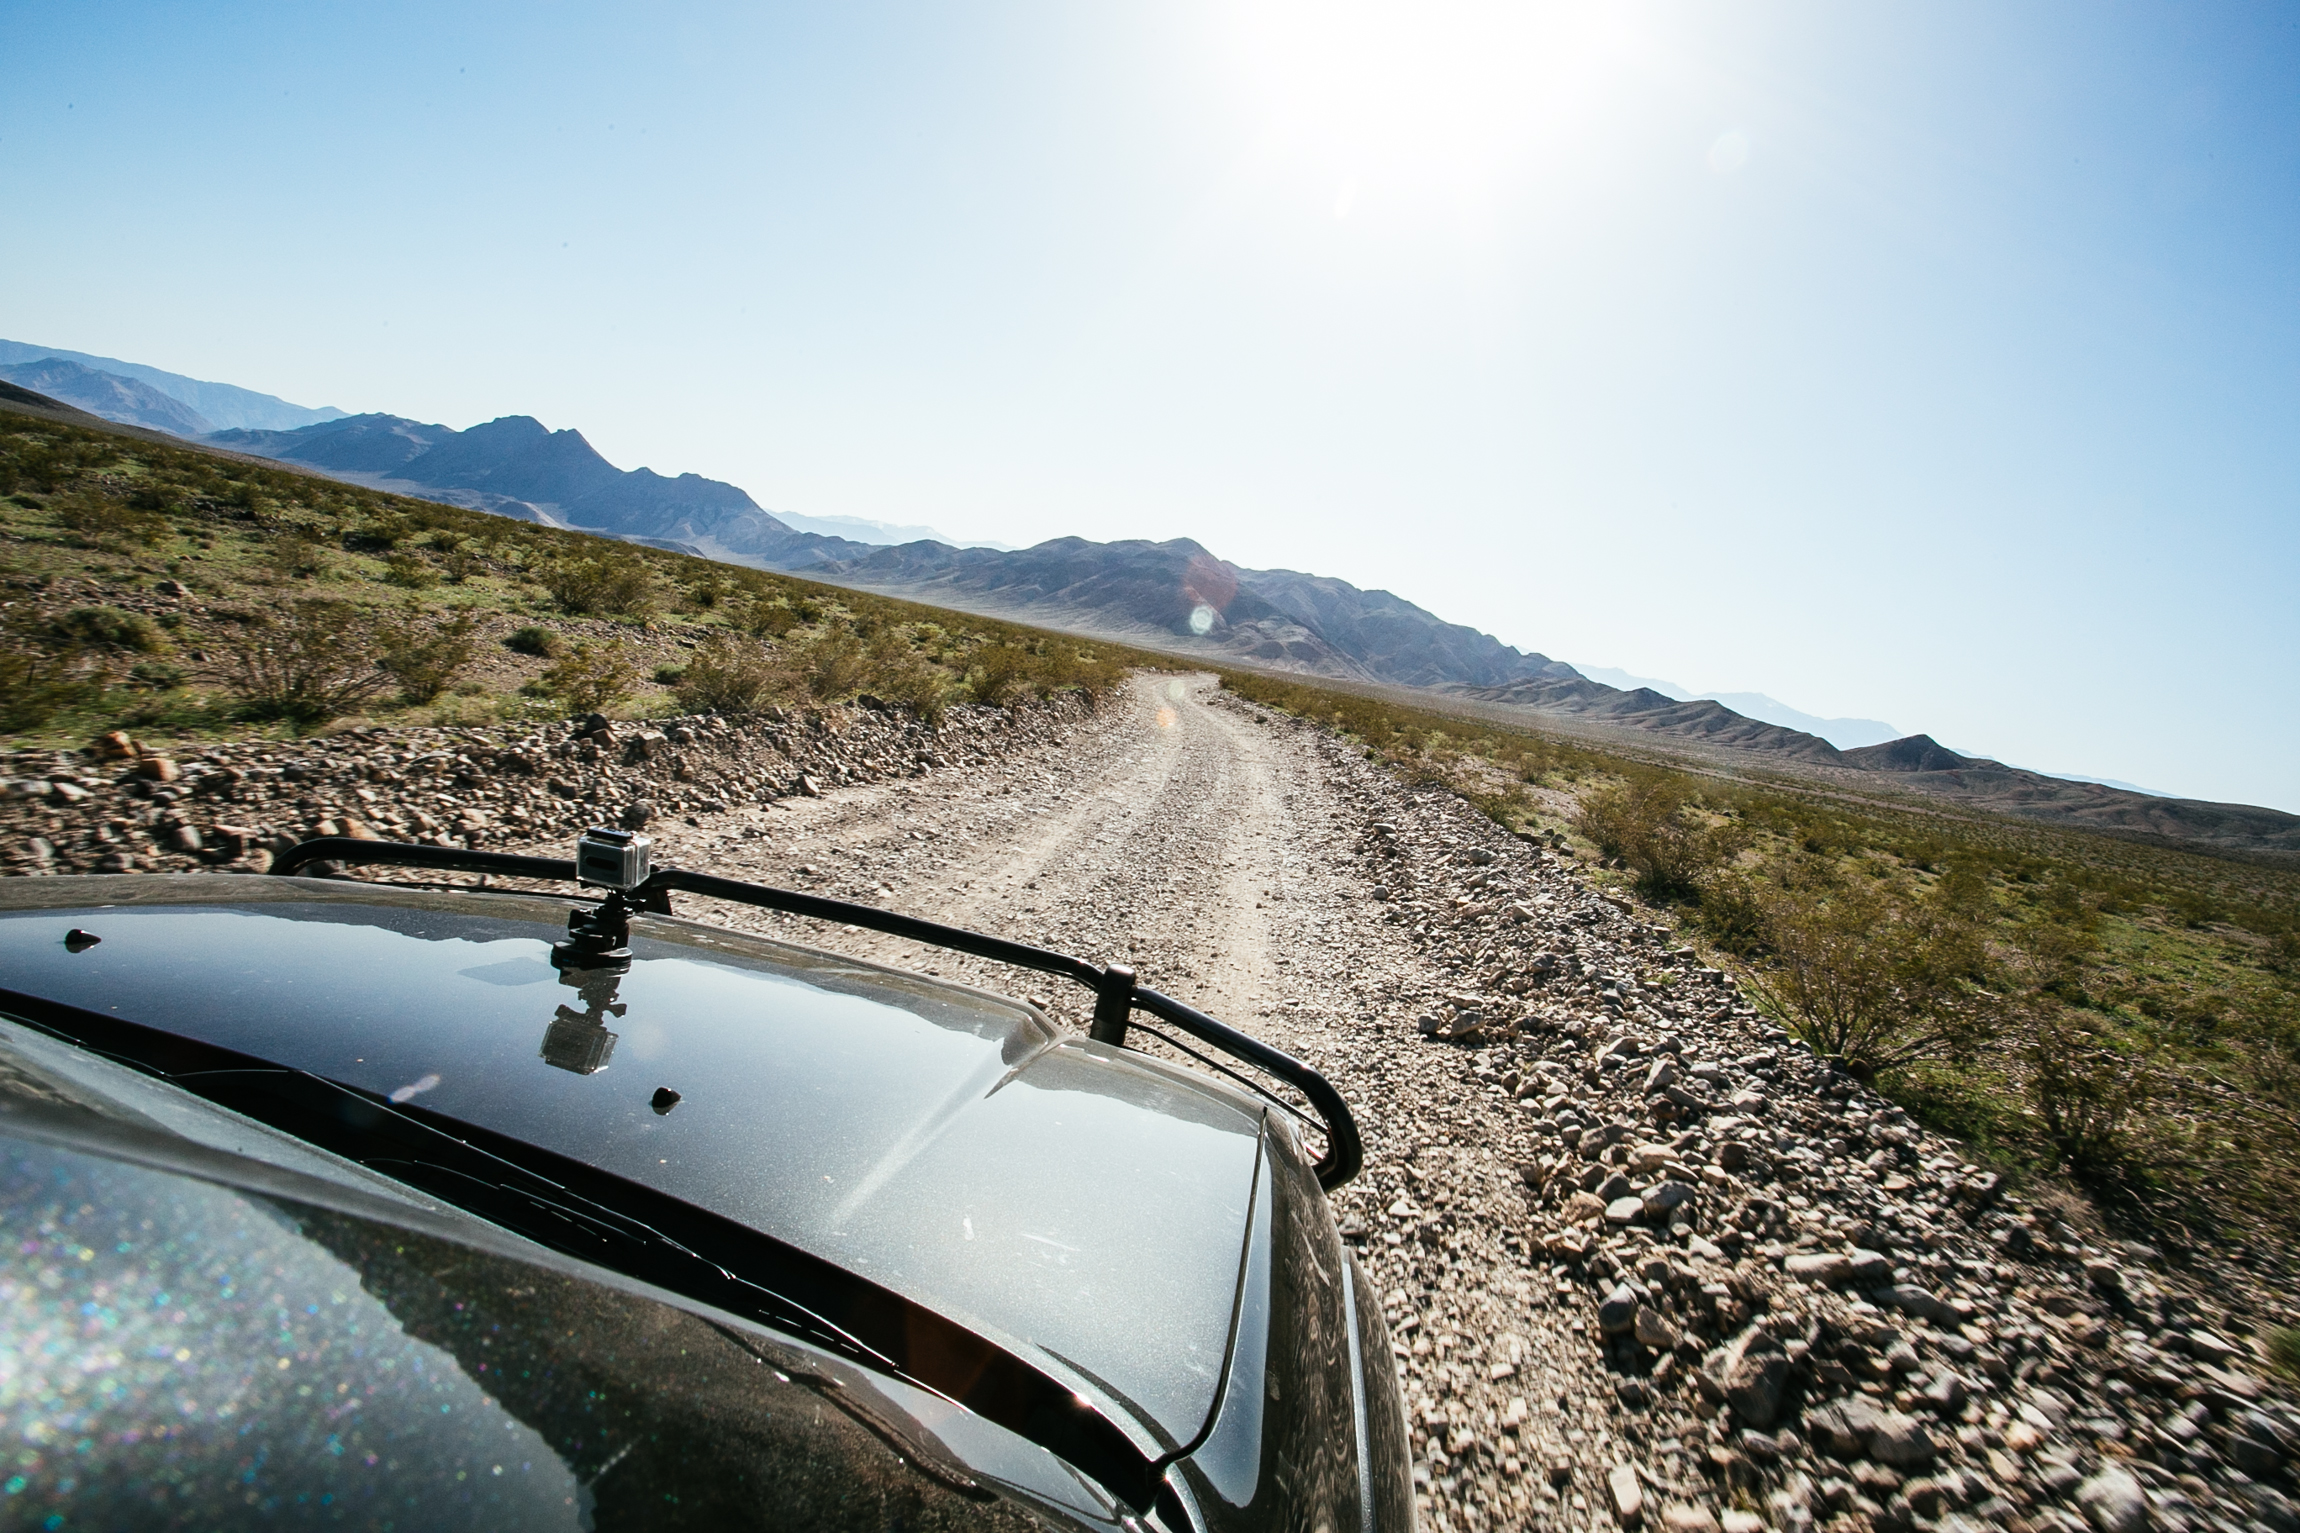 Off road for 28 miles to Racetrack Playa.